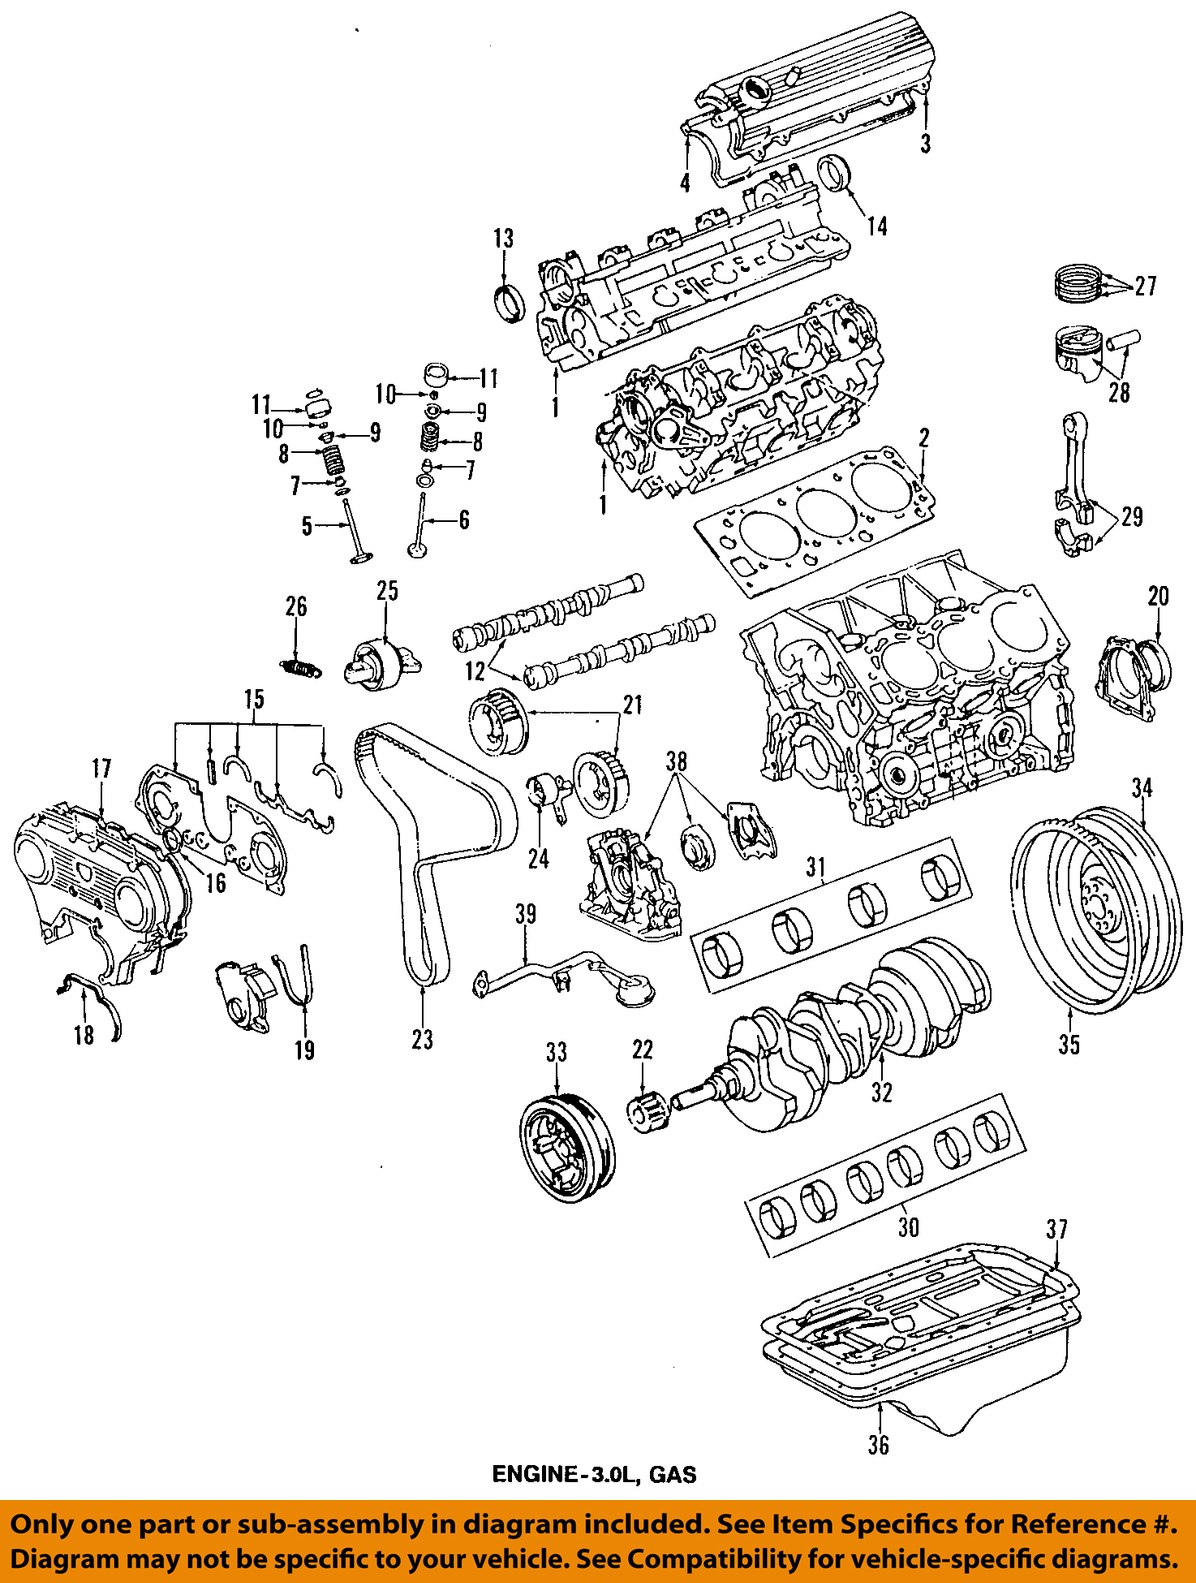 93 Camry Engine Parts Diagram Toyota Oil Wiring Diagrams Oem 98 T100 Pan 1210165012 Ebay